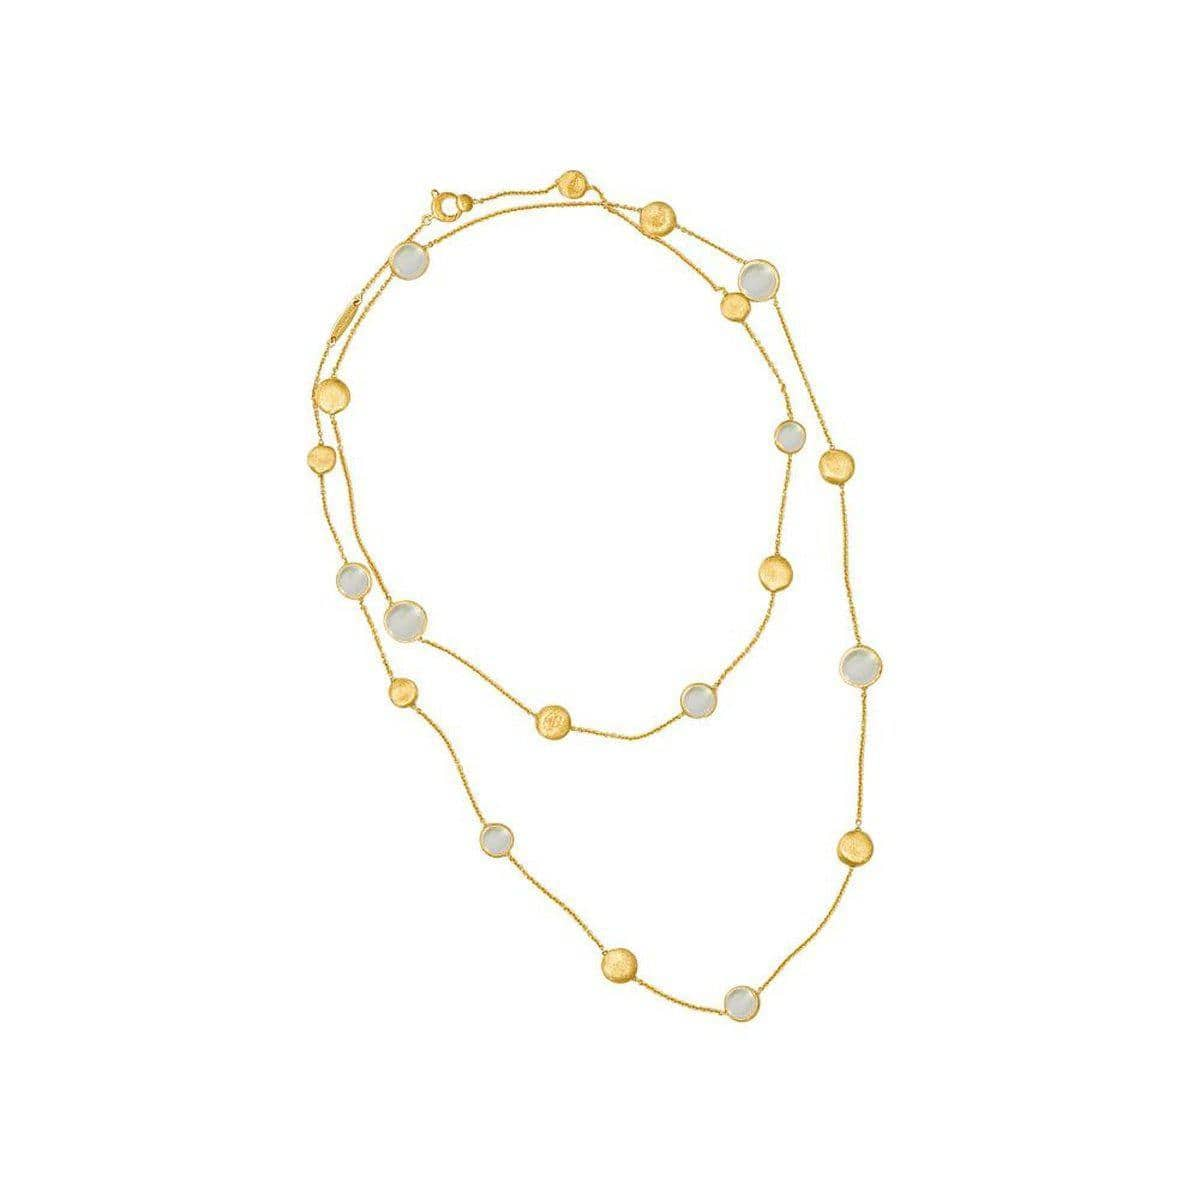 18K Jaipur Necklace - CB1238 MPW Y 36""